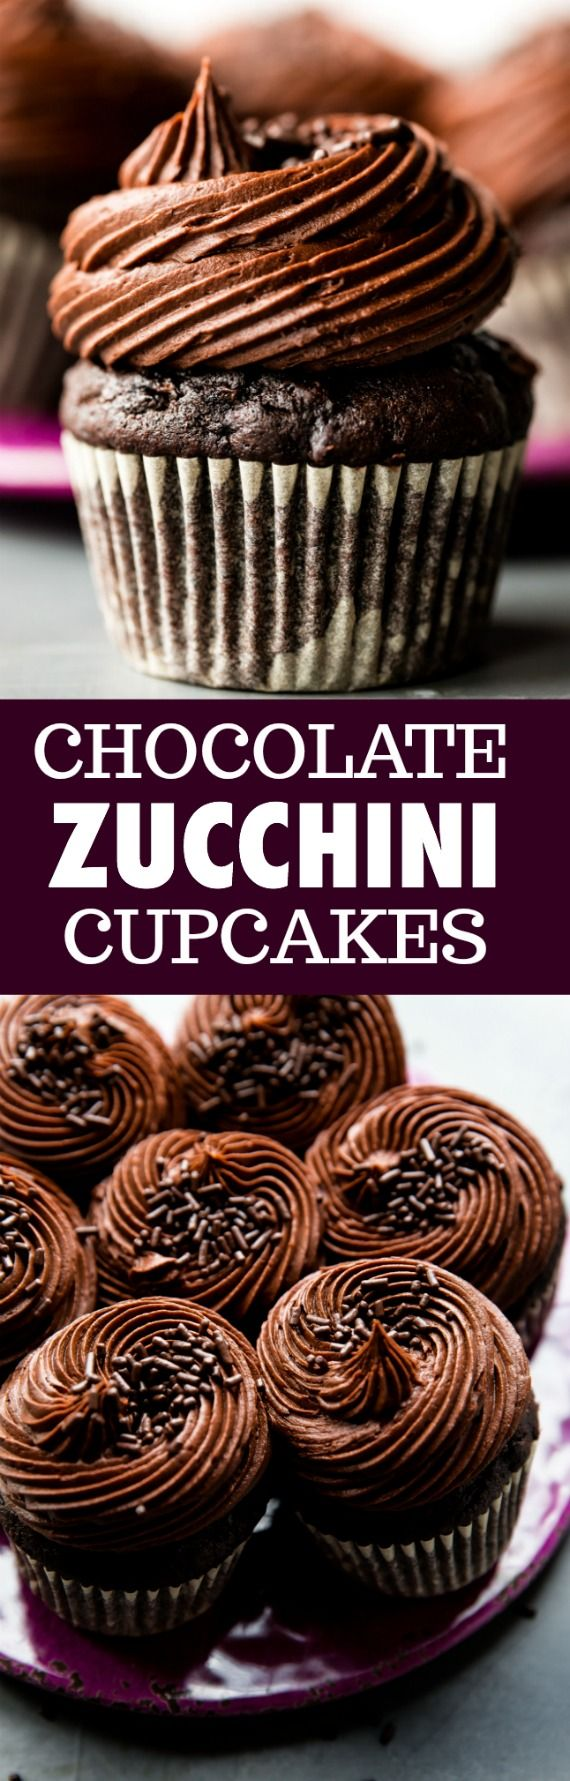 Super moist and rich chocolate zucchini cupcakes with chocolate frosting! You won't taste the zucchini and everyone FLIPPED for these cupcakes! Recipe on sallysbakingaddiction.com